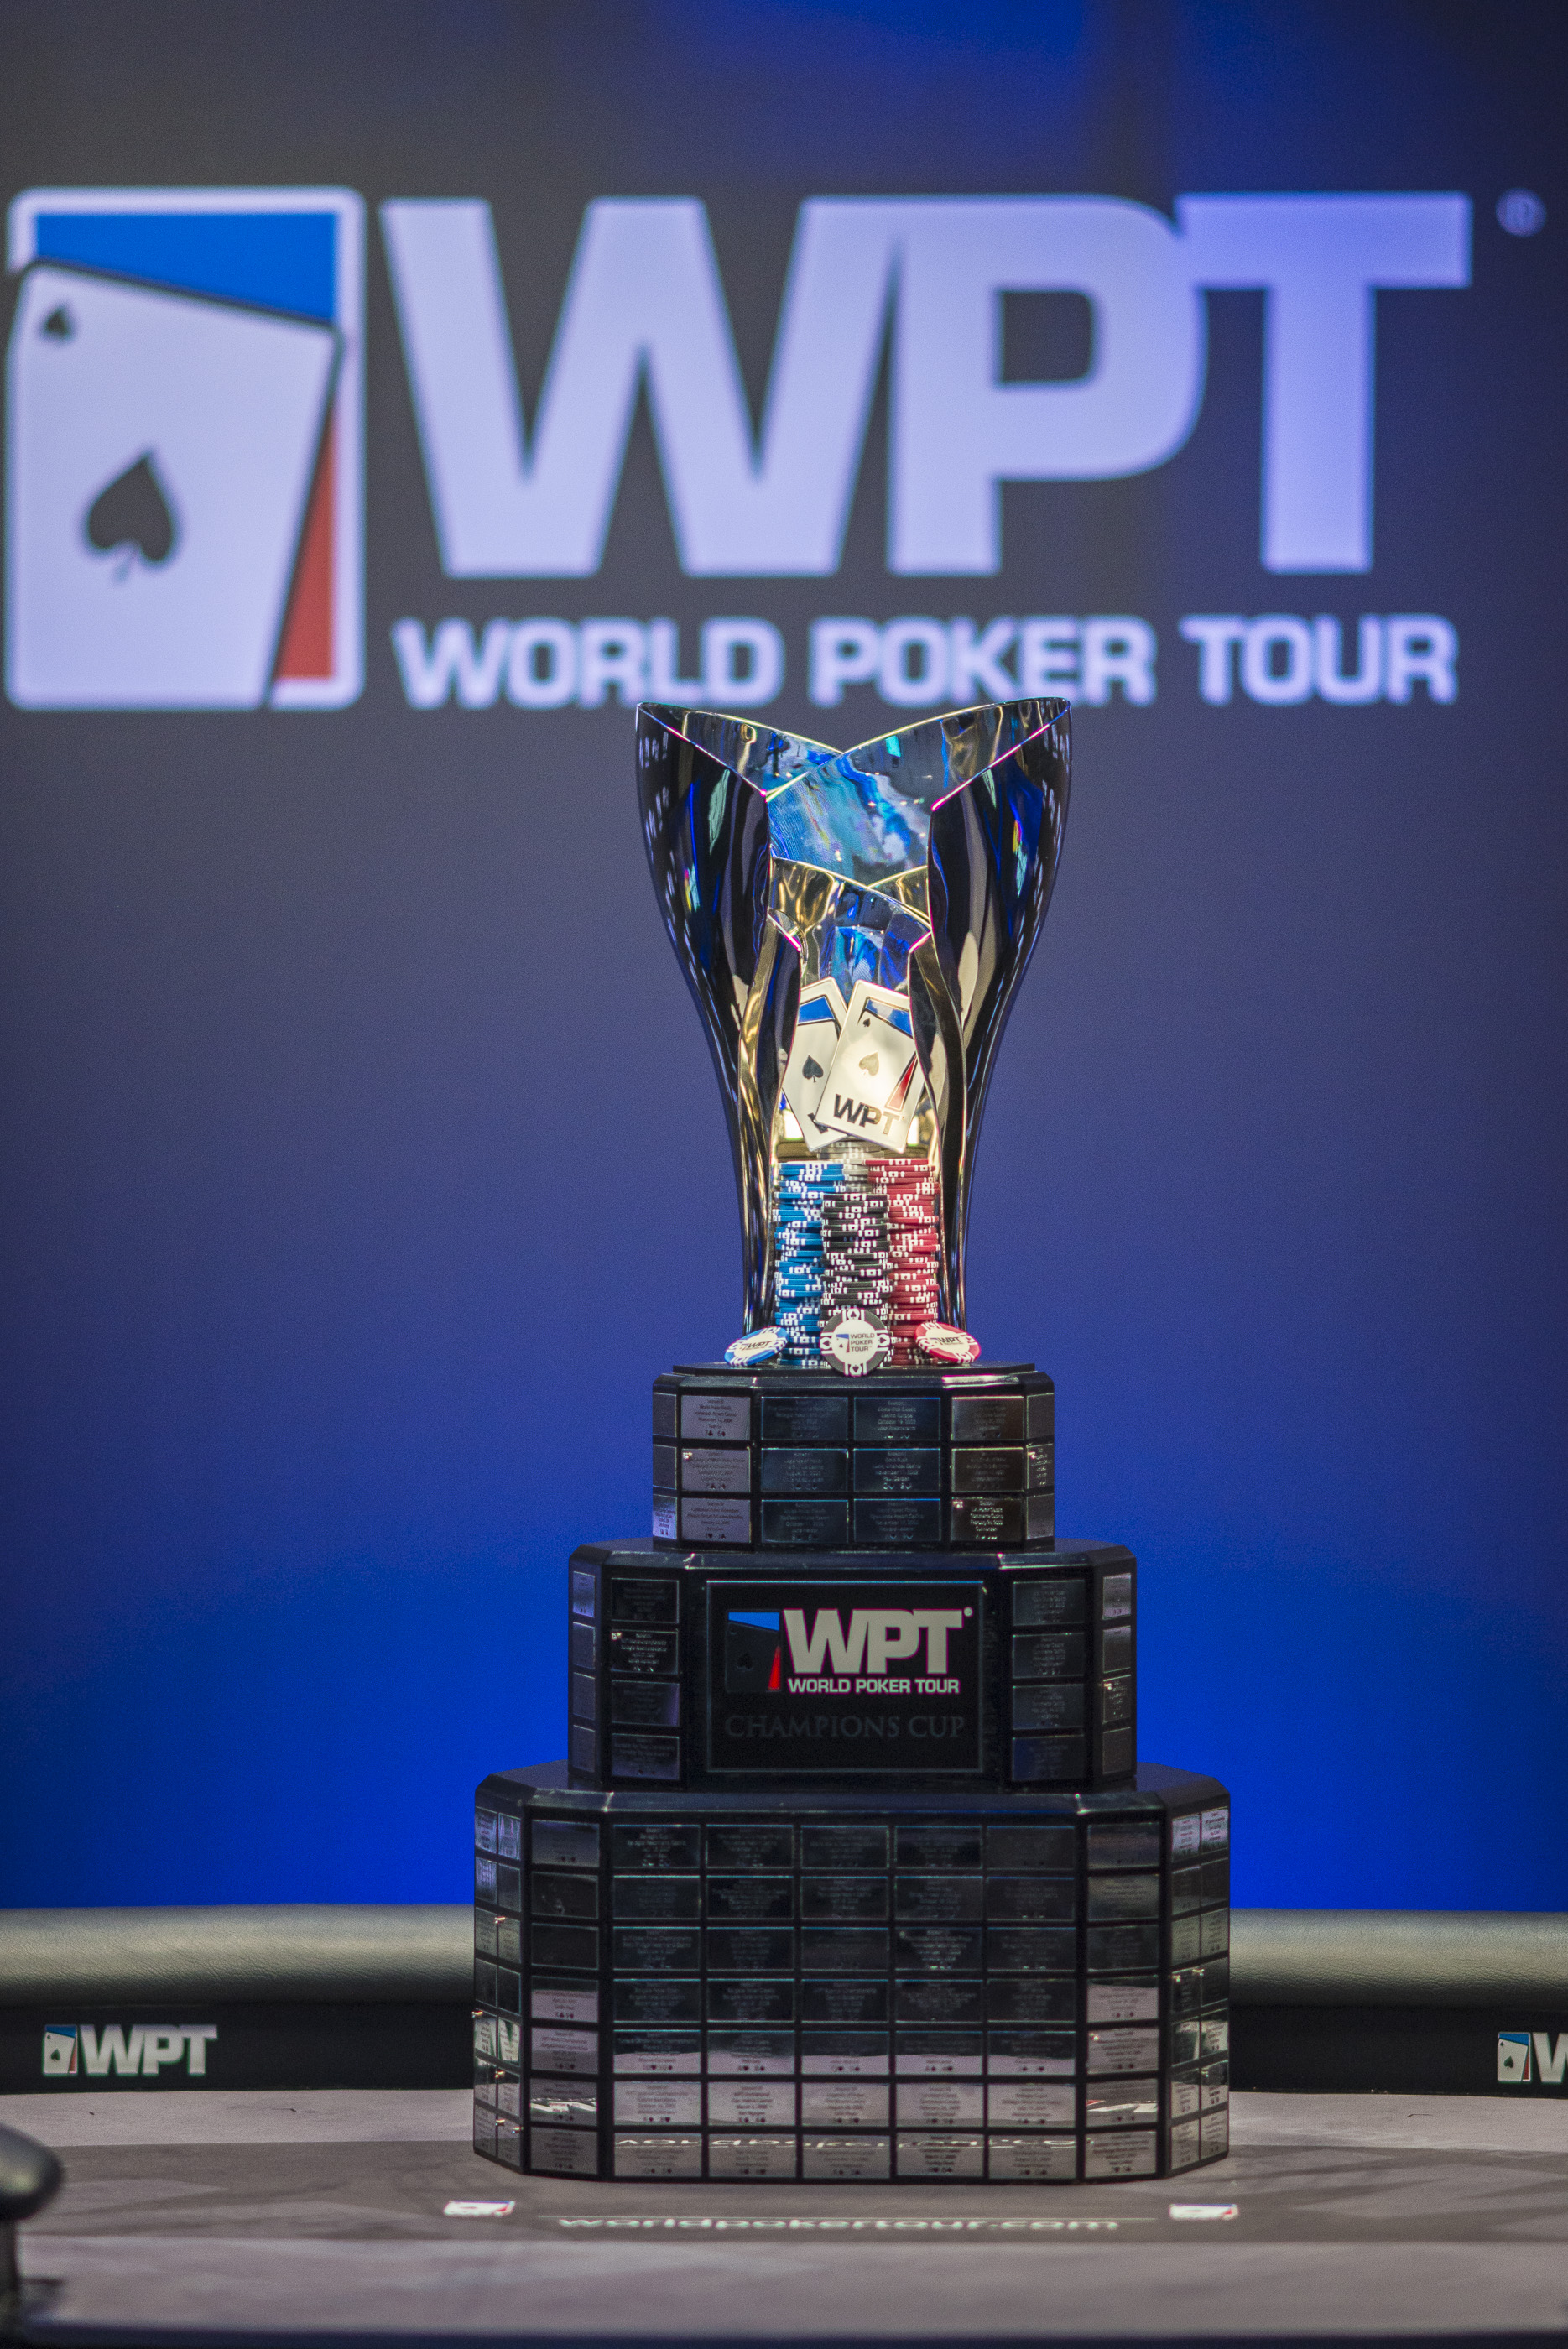 World Poker Tour_WPT Champions Cup_DA64214.jpg